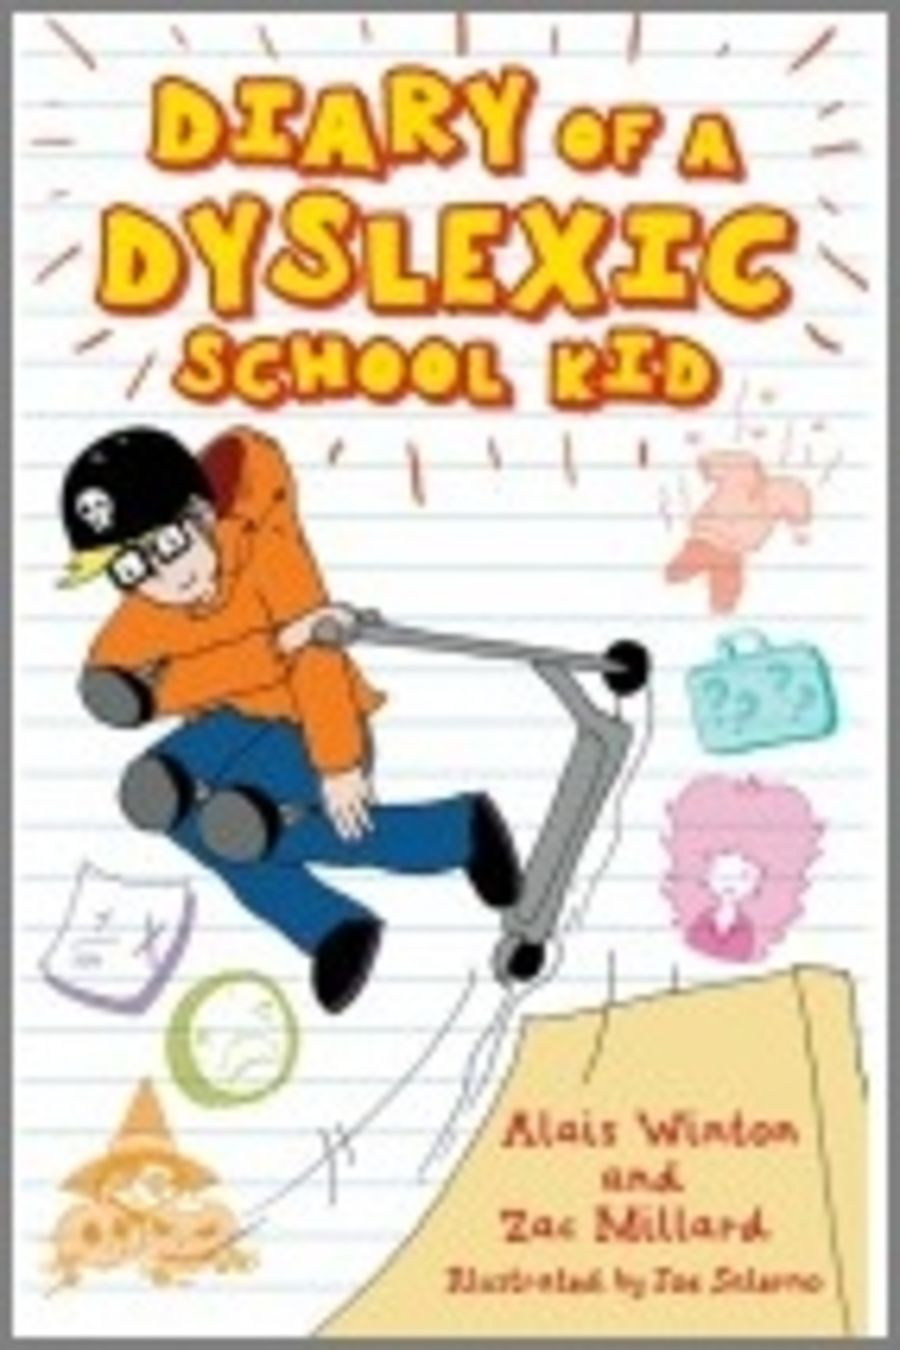 Diary of a Dyslexic School Kid